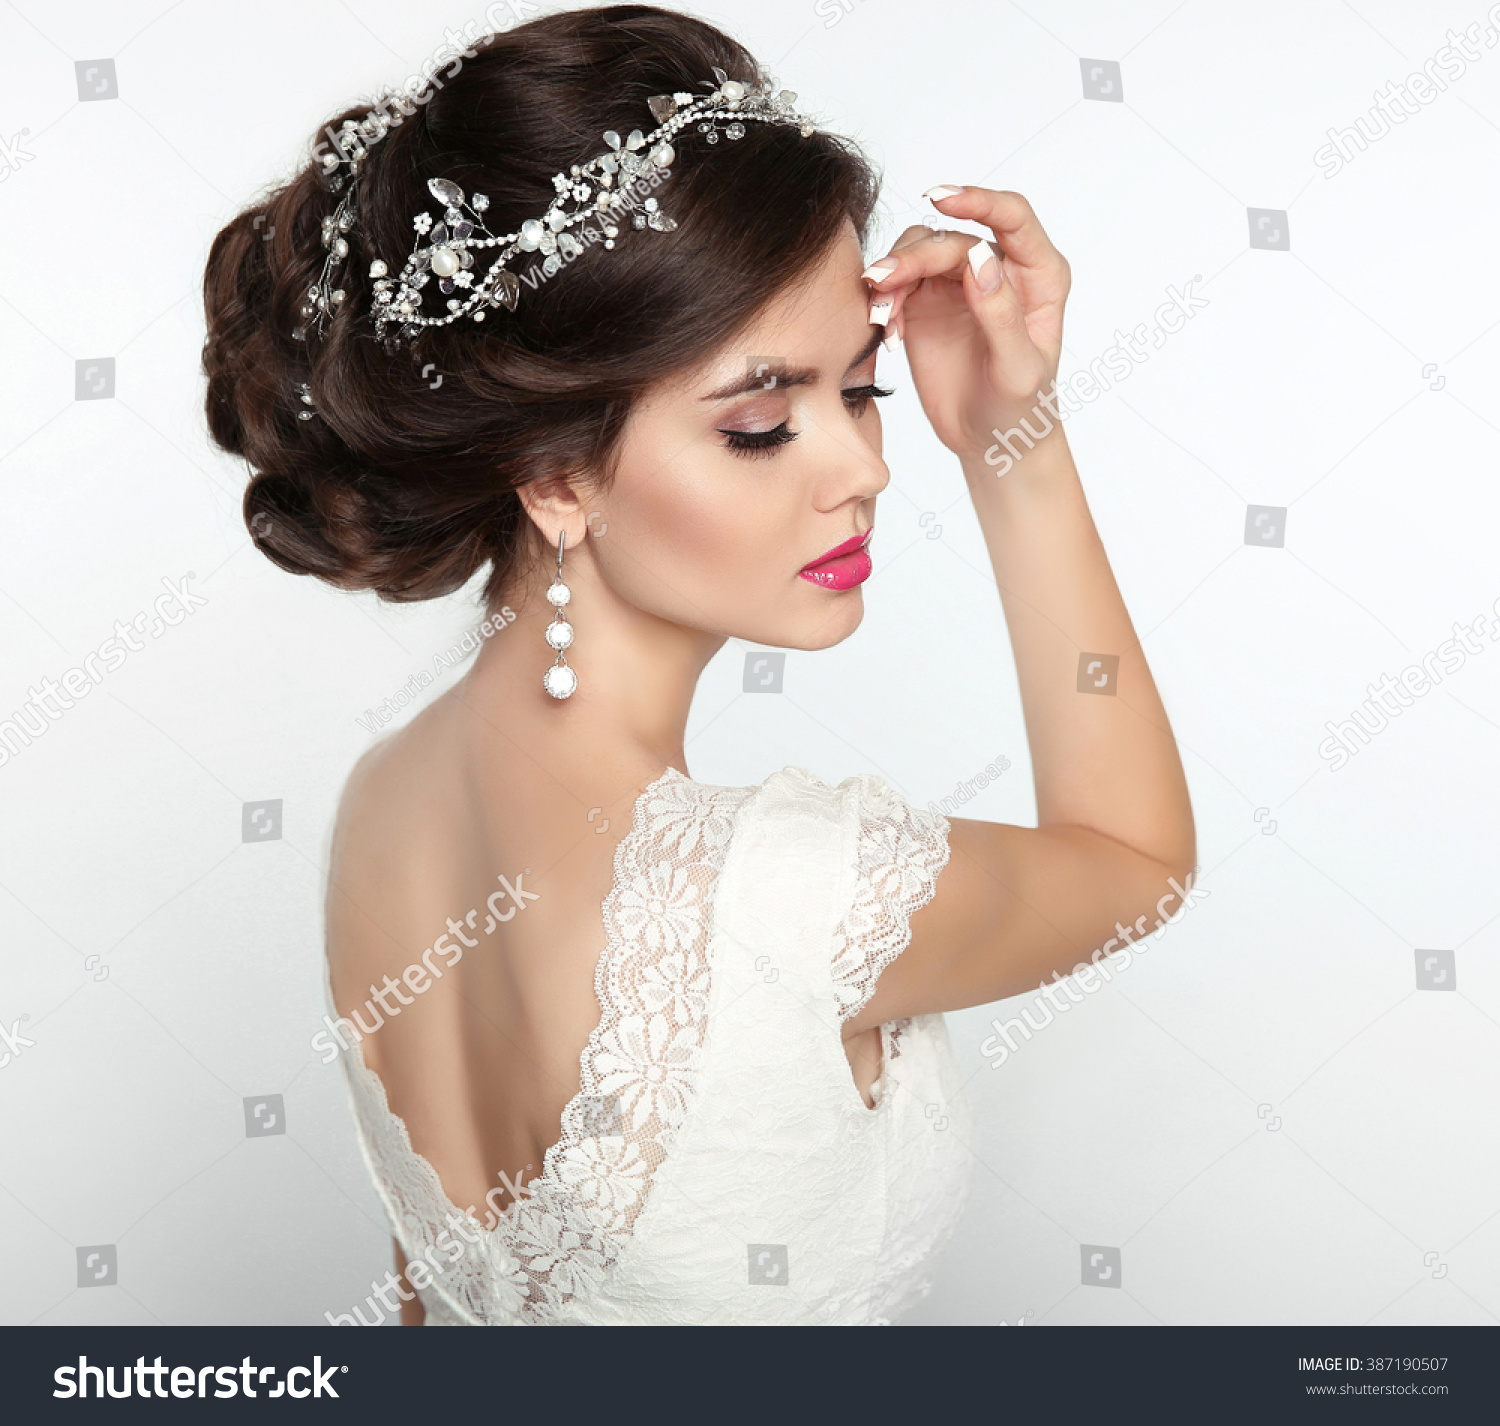 Wedding Hairstyle Beautiful Fashion Bride Girl Stock Photo (Royalty ...